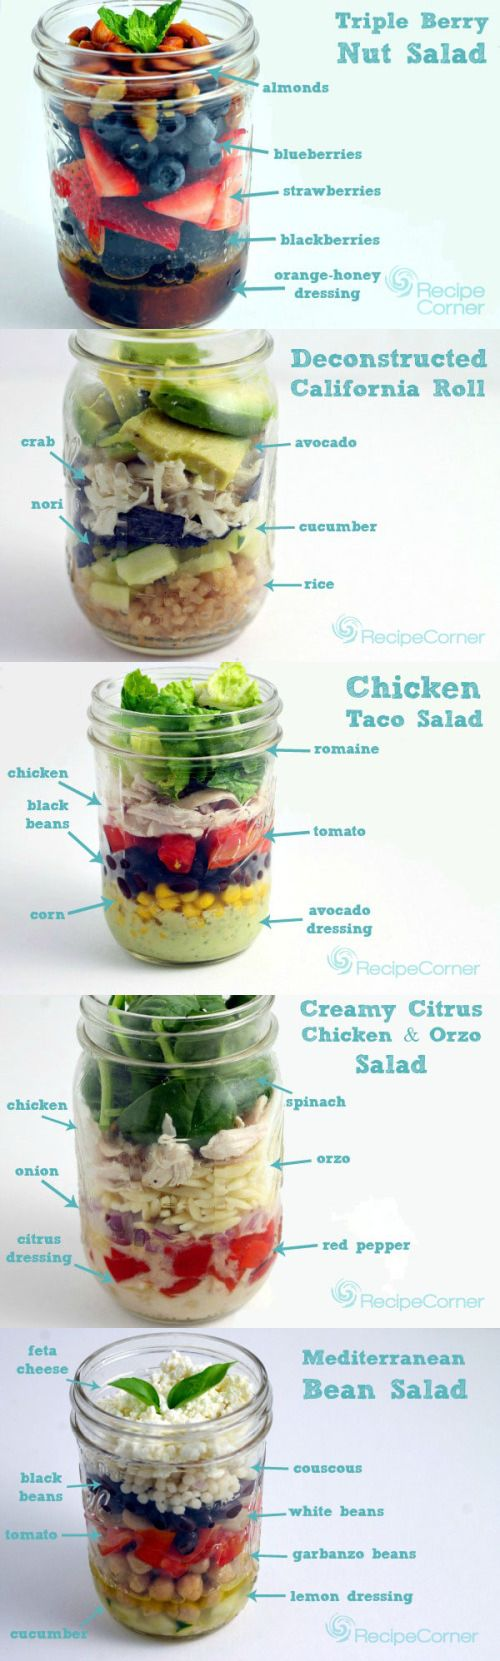 Delicious salad ideas!